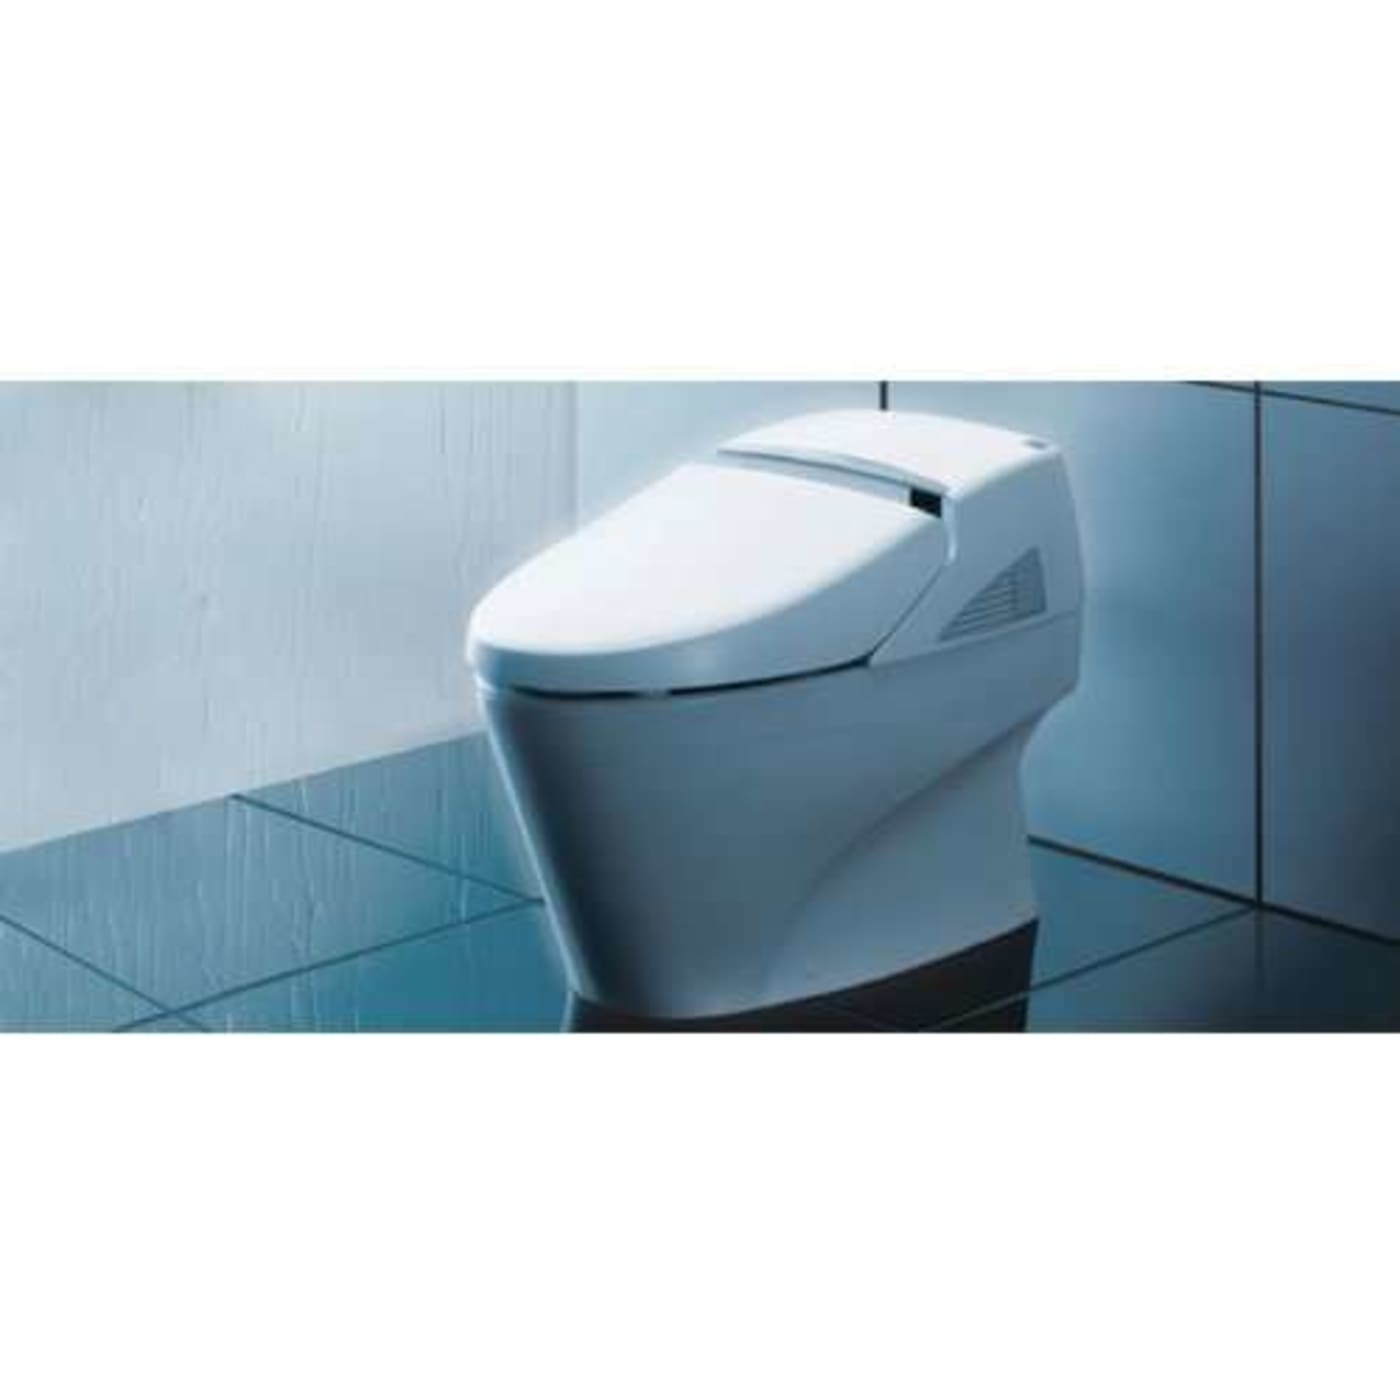 THU9028 by Toto - Toilets | Goedekers.com